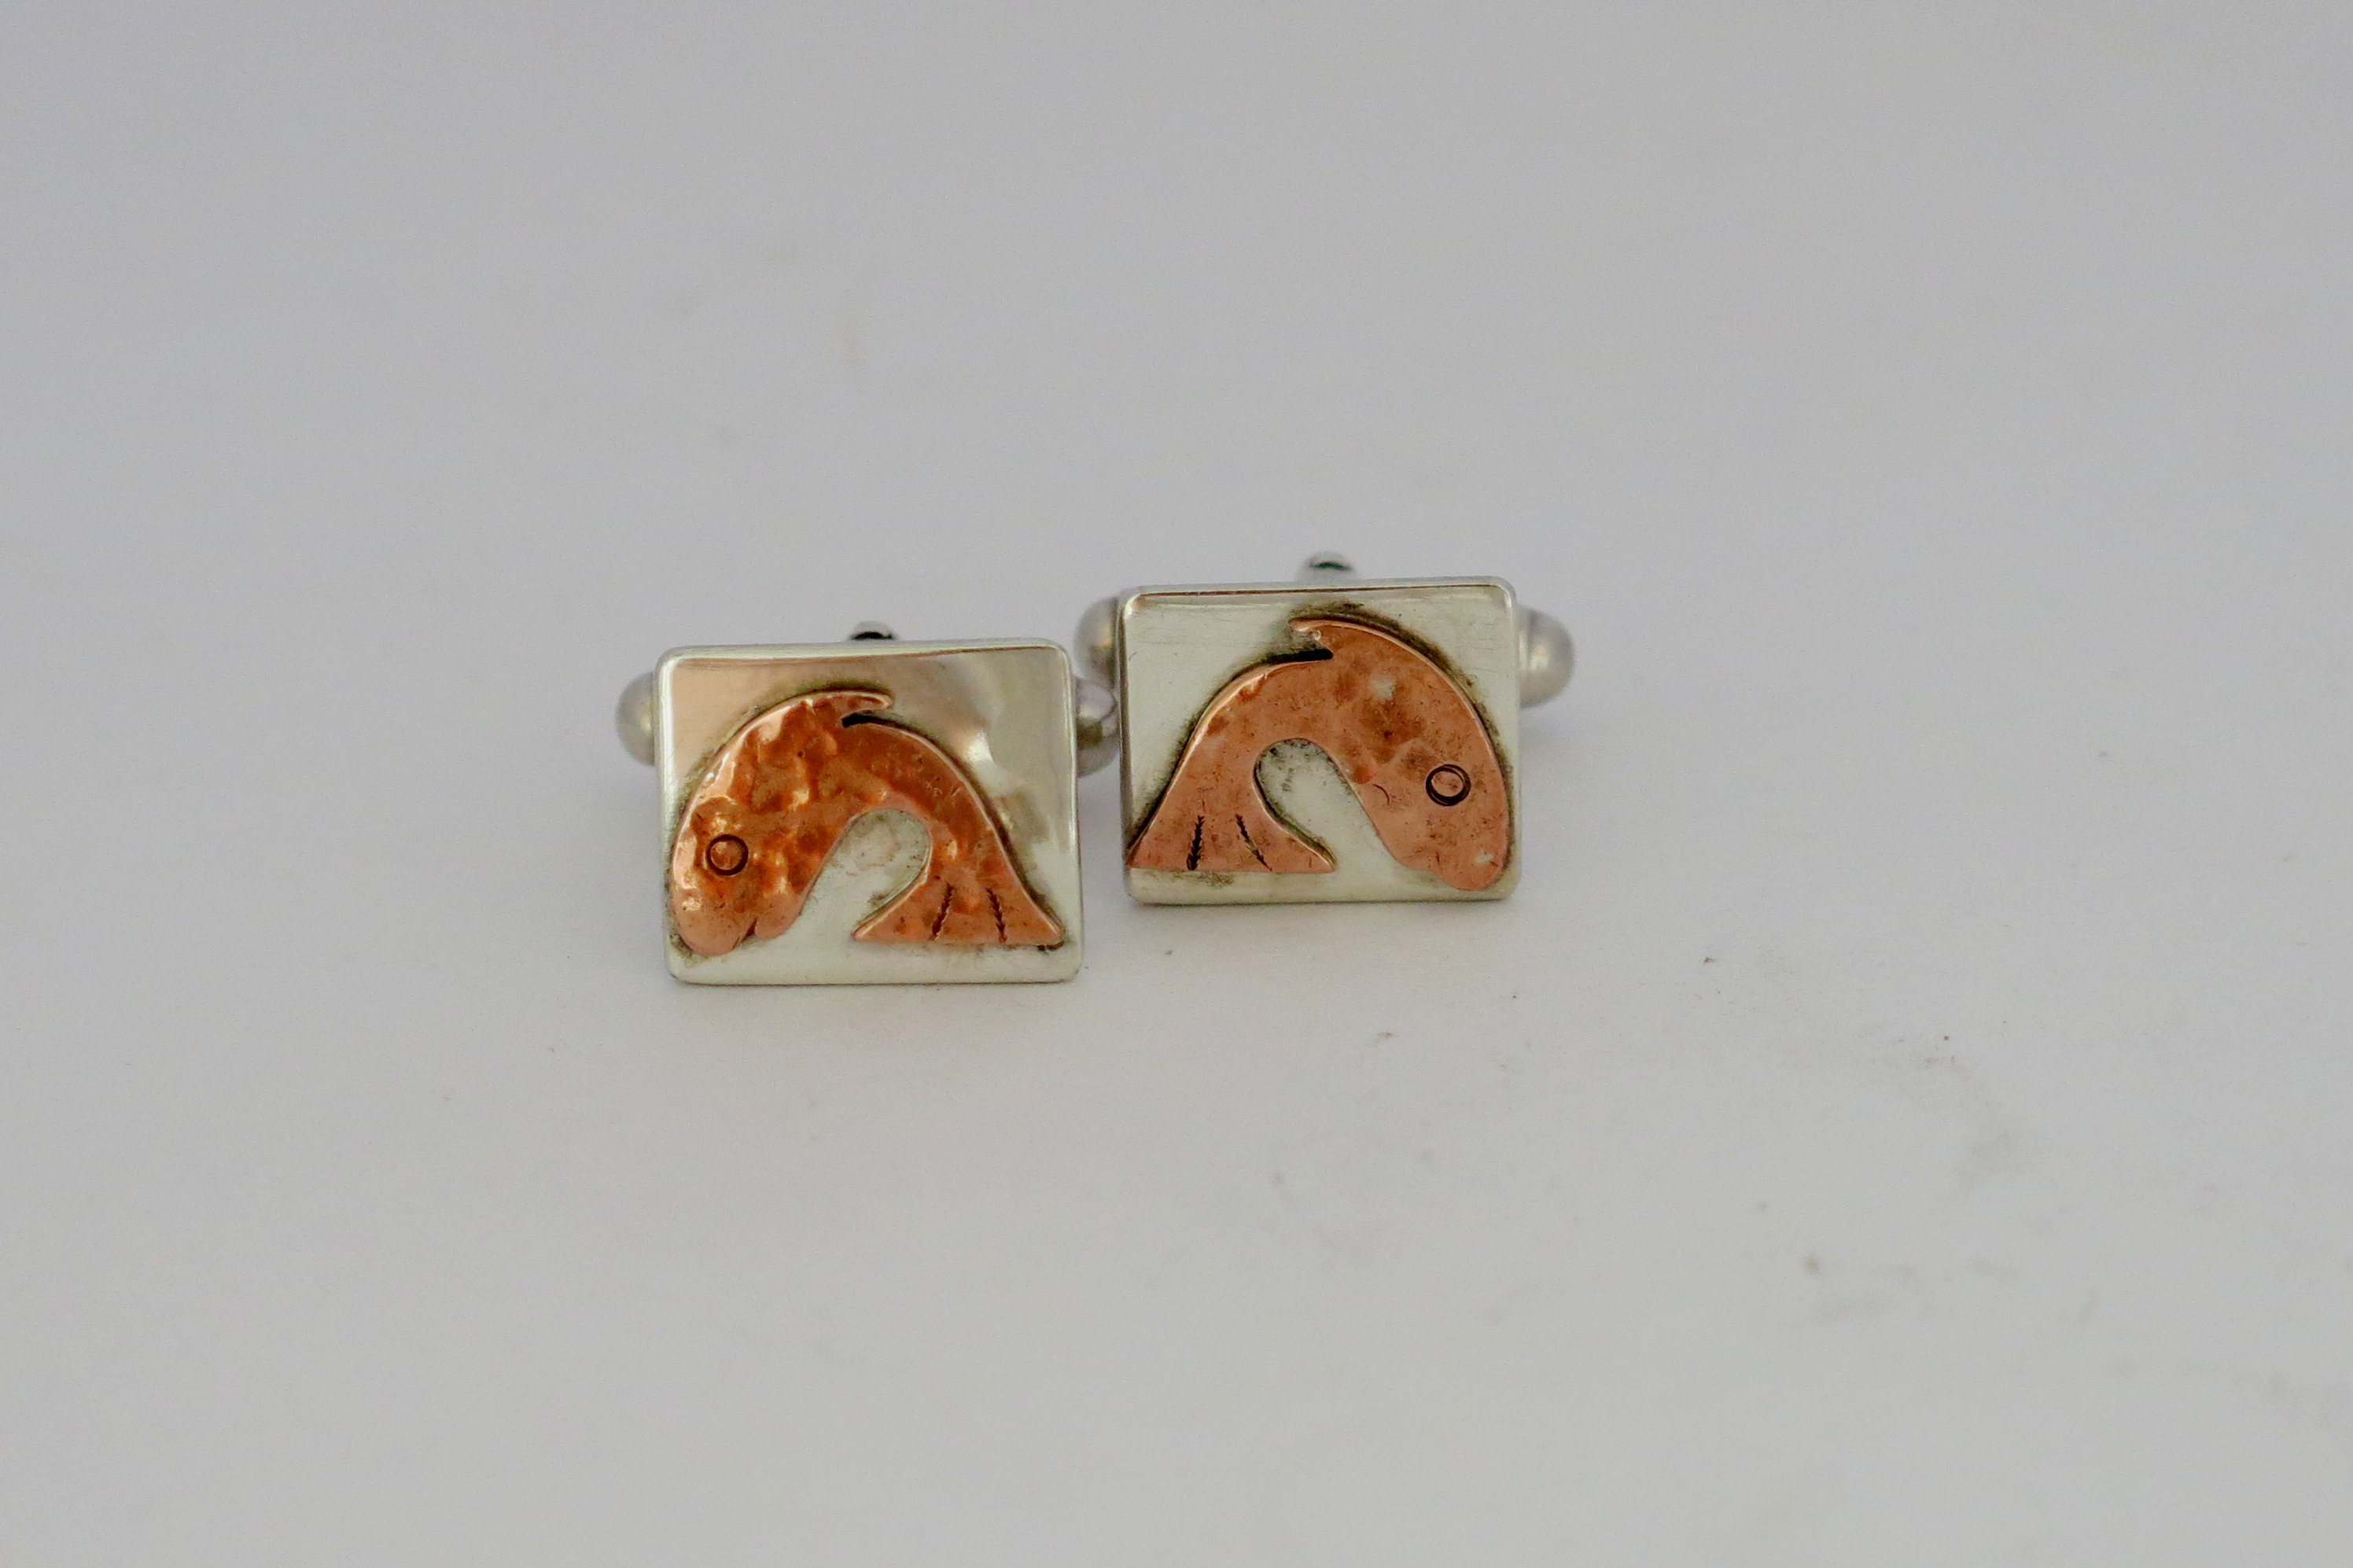 Copper leaping fish cufflinks